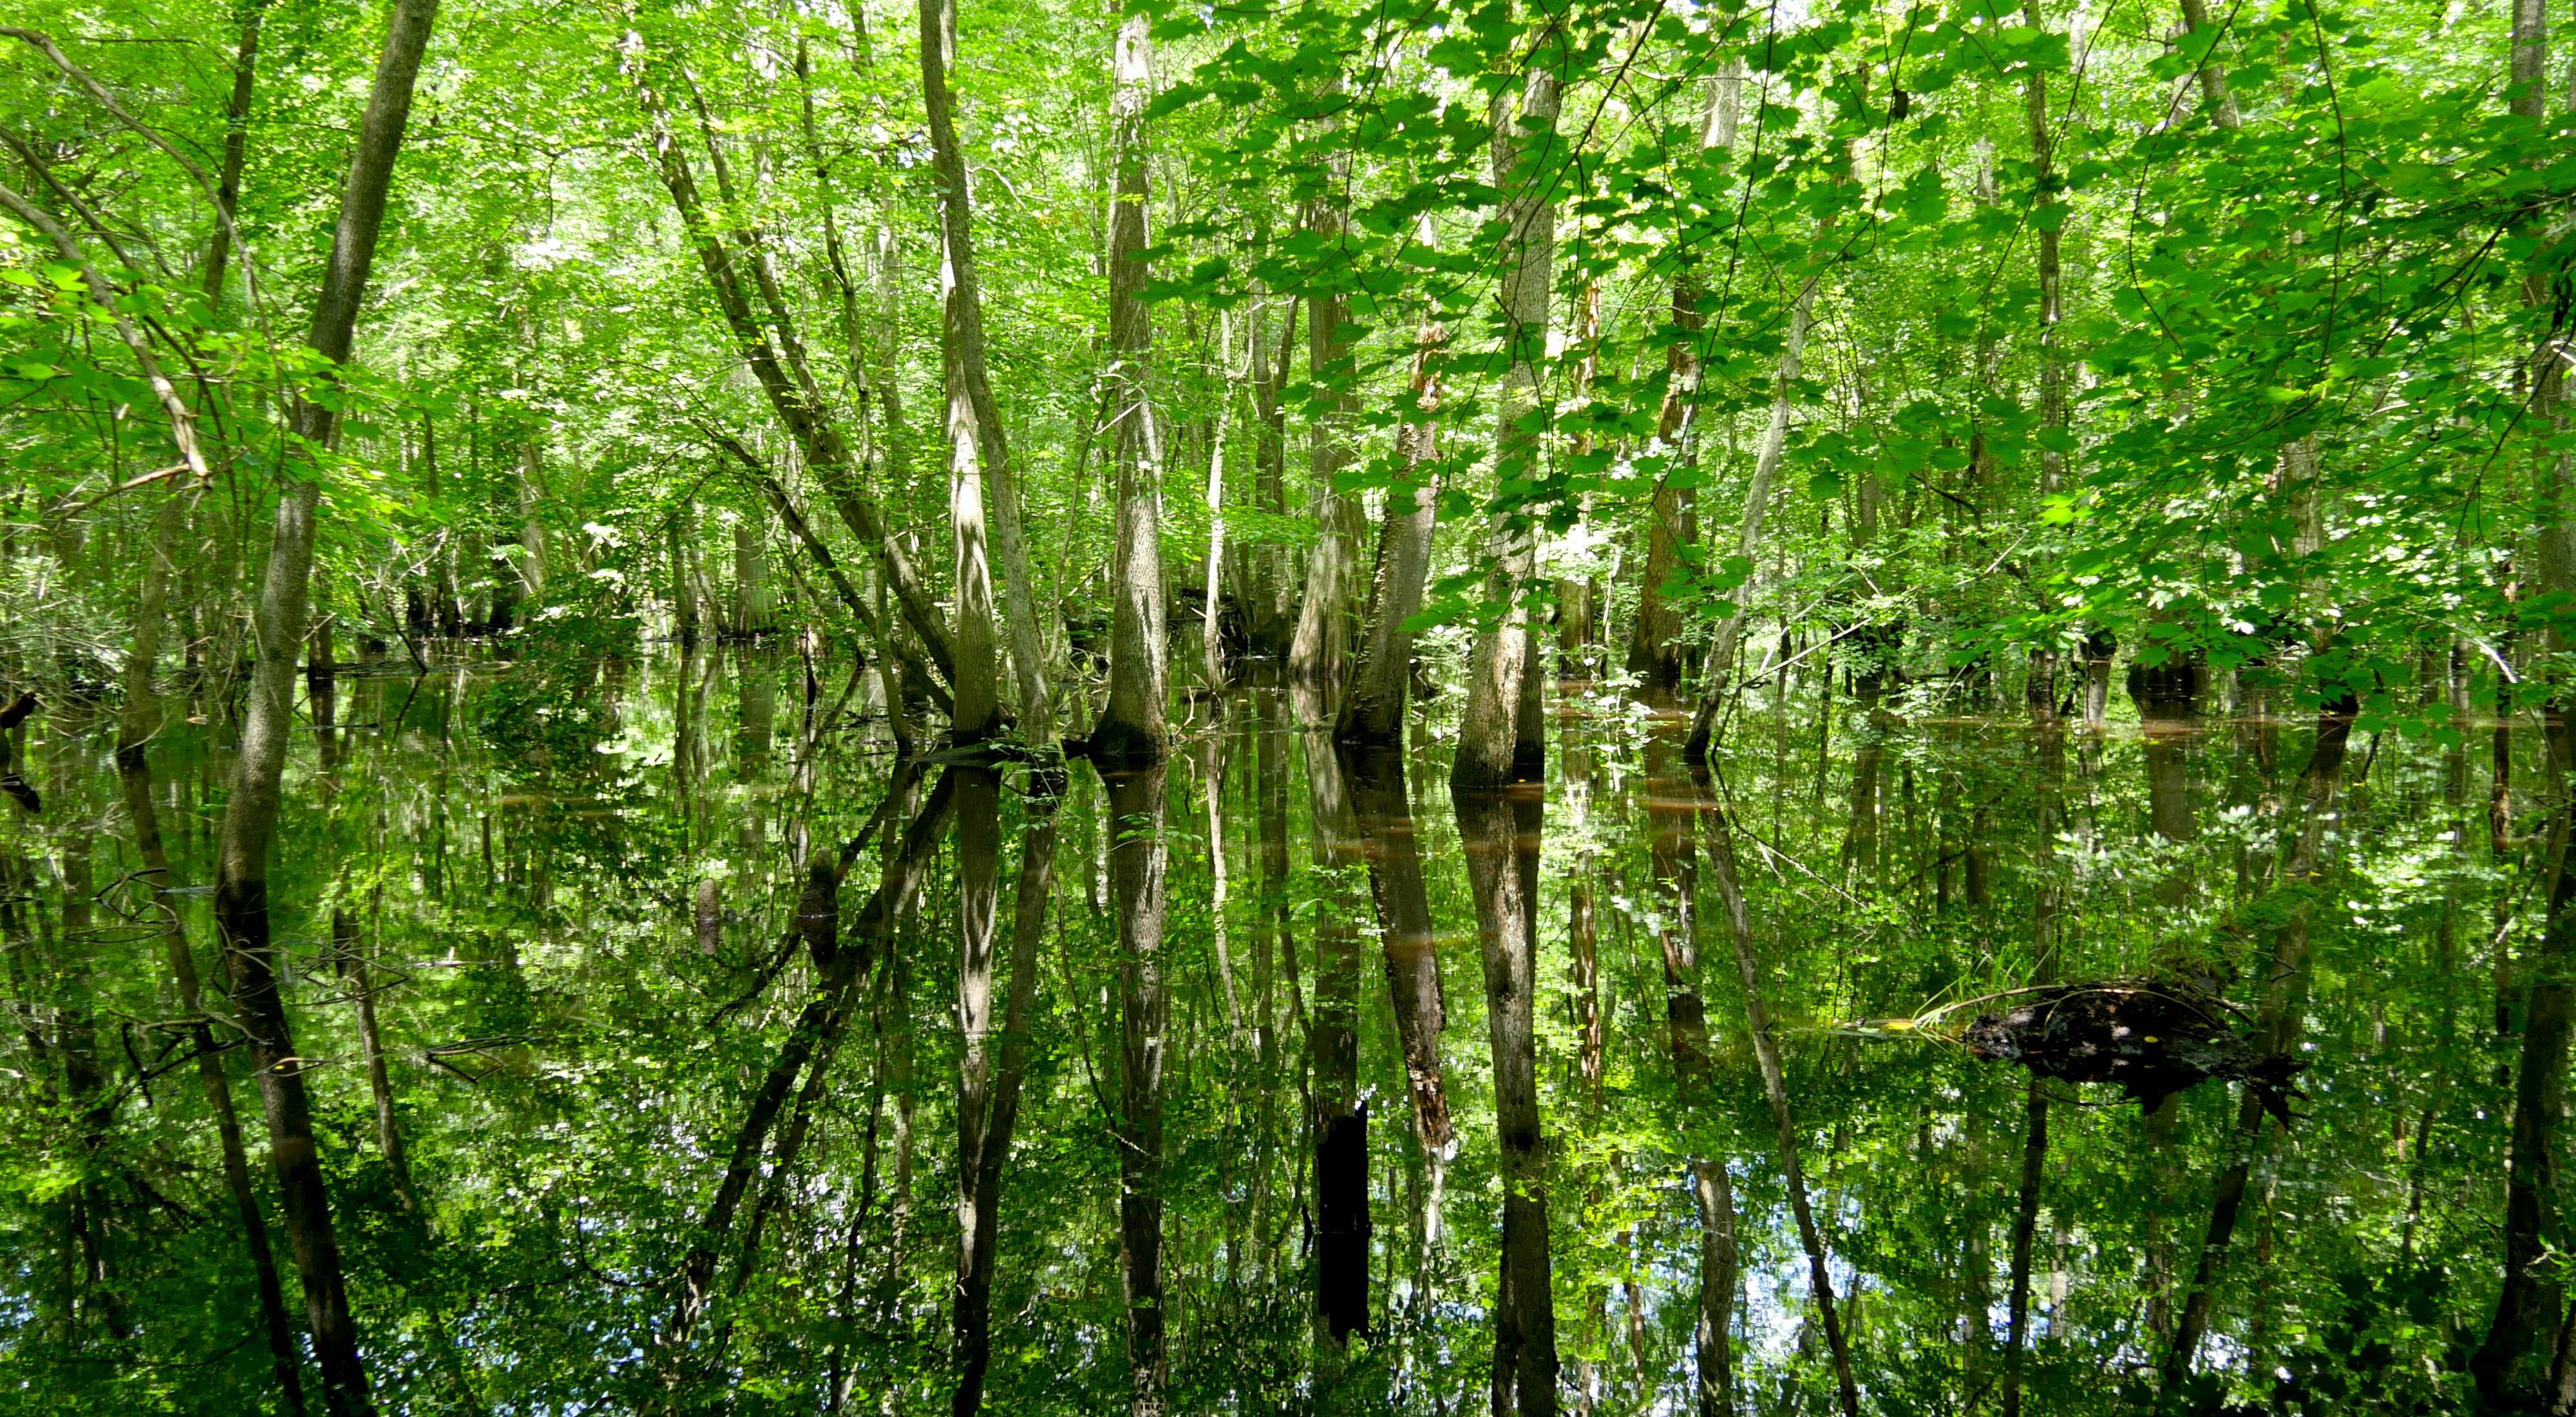 Cypress trees are reflected in the mirror still surface of a wide river that flows through a swamp section of the Pocomoke floodplain.